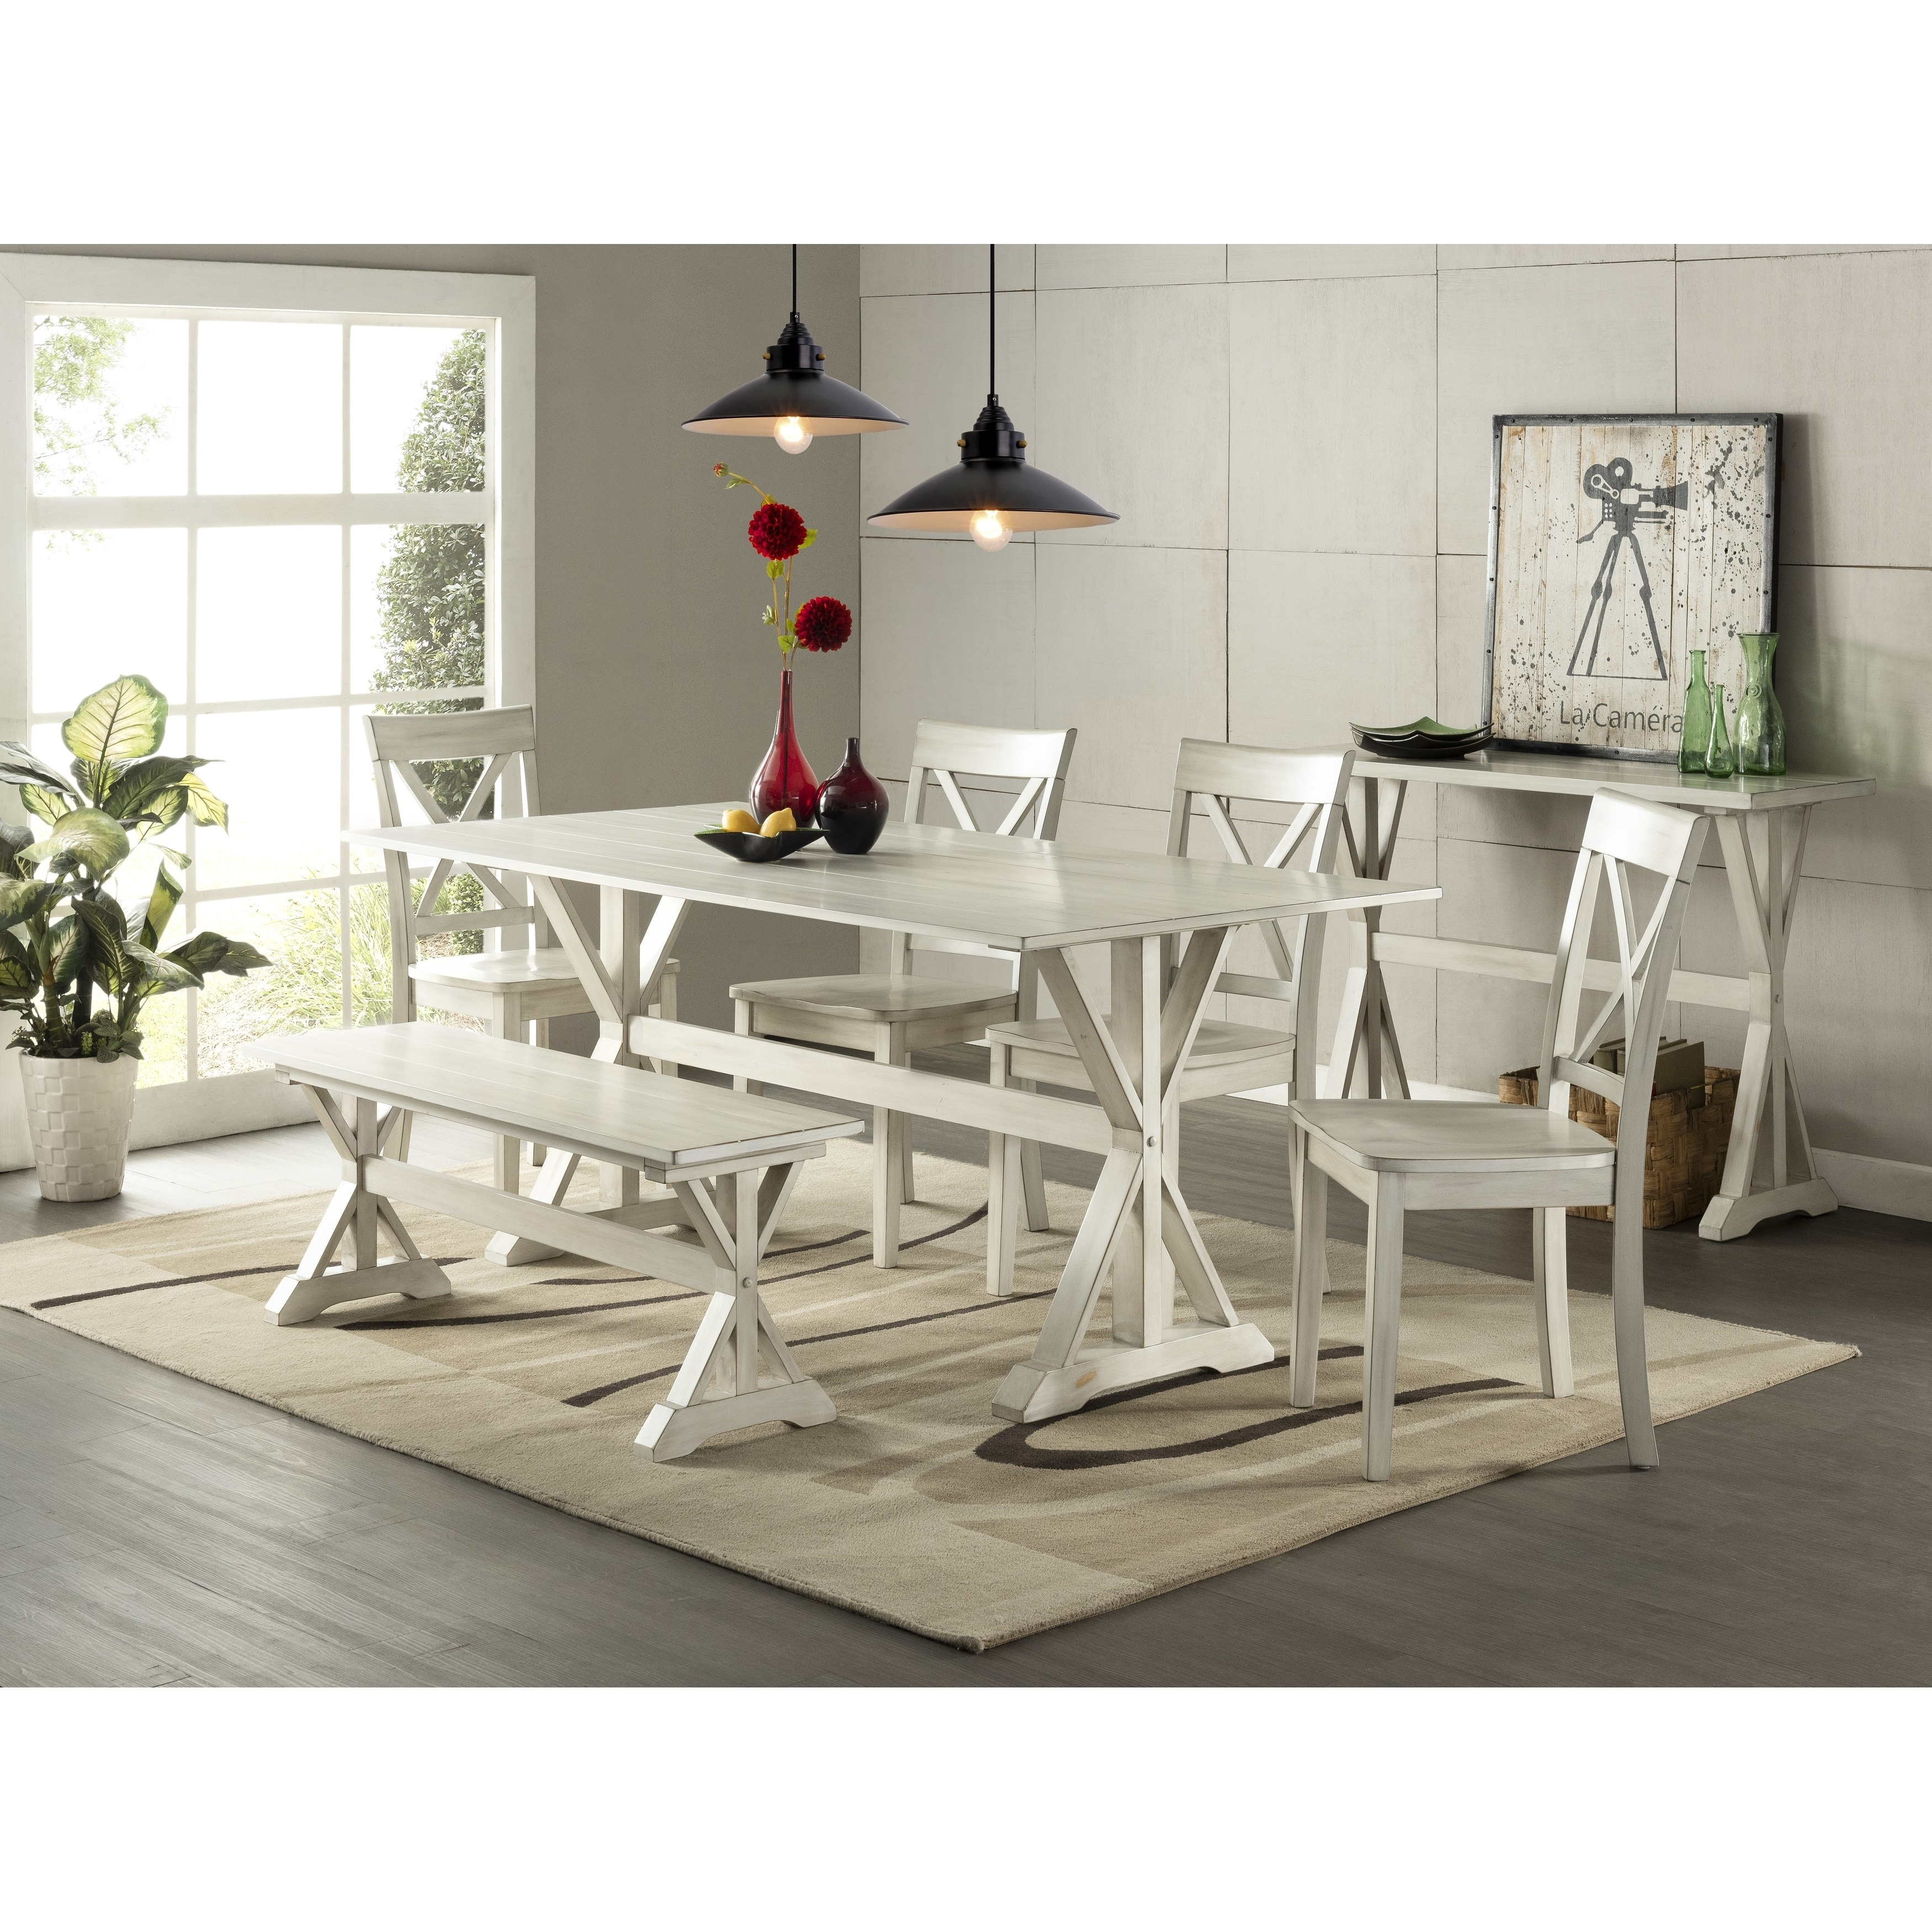 Distressed White Dining Room Set